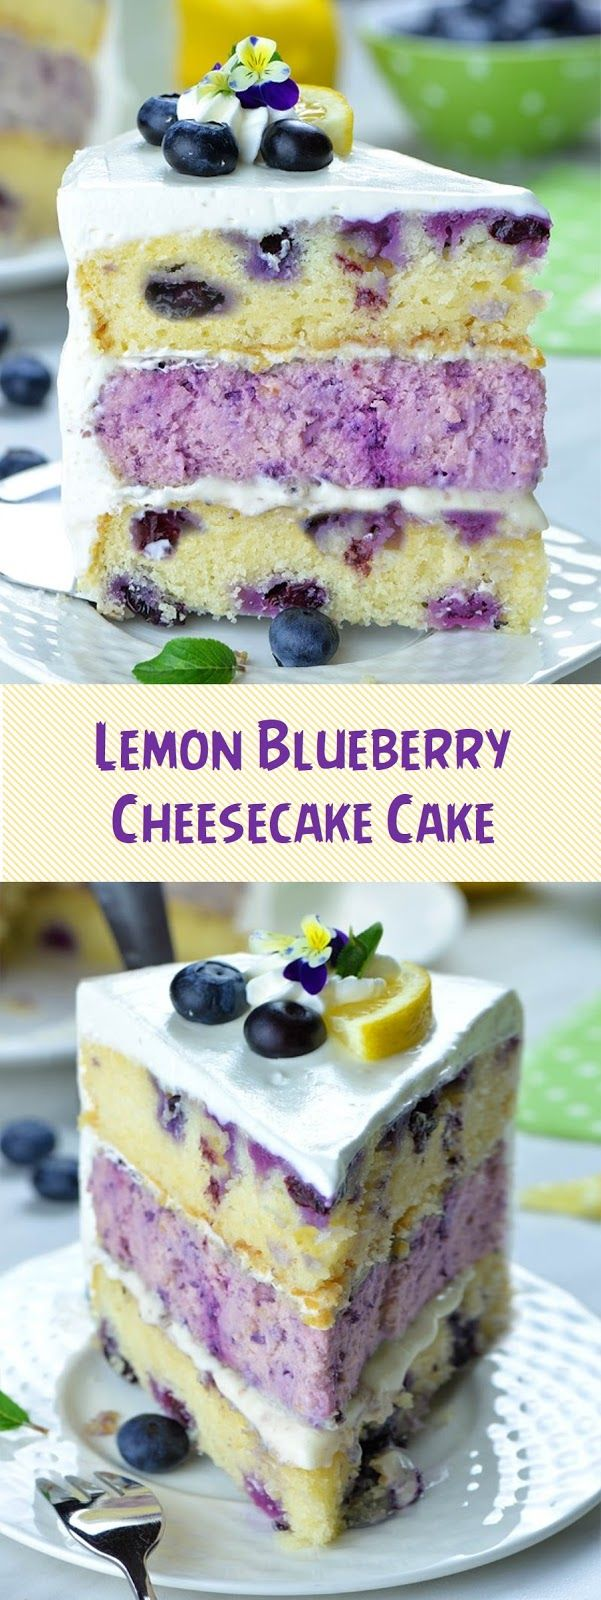 Lemon Blueberry Cheesecake Cake #cheesecakerecipes